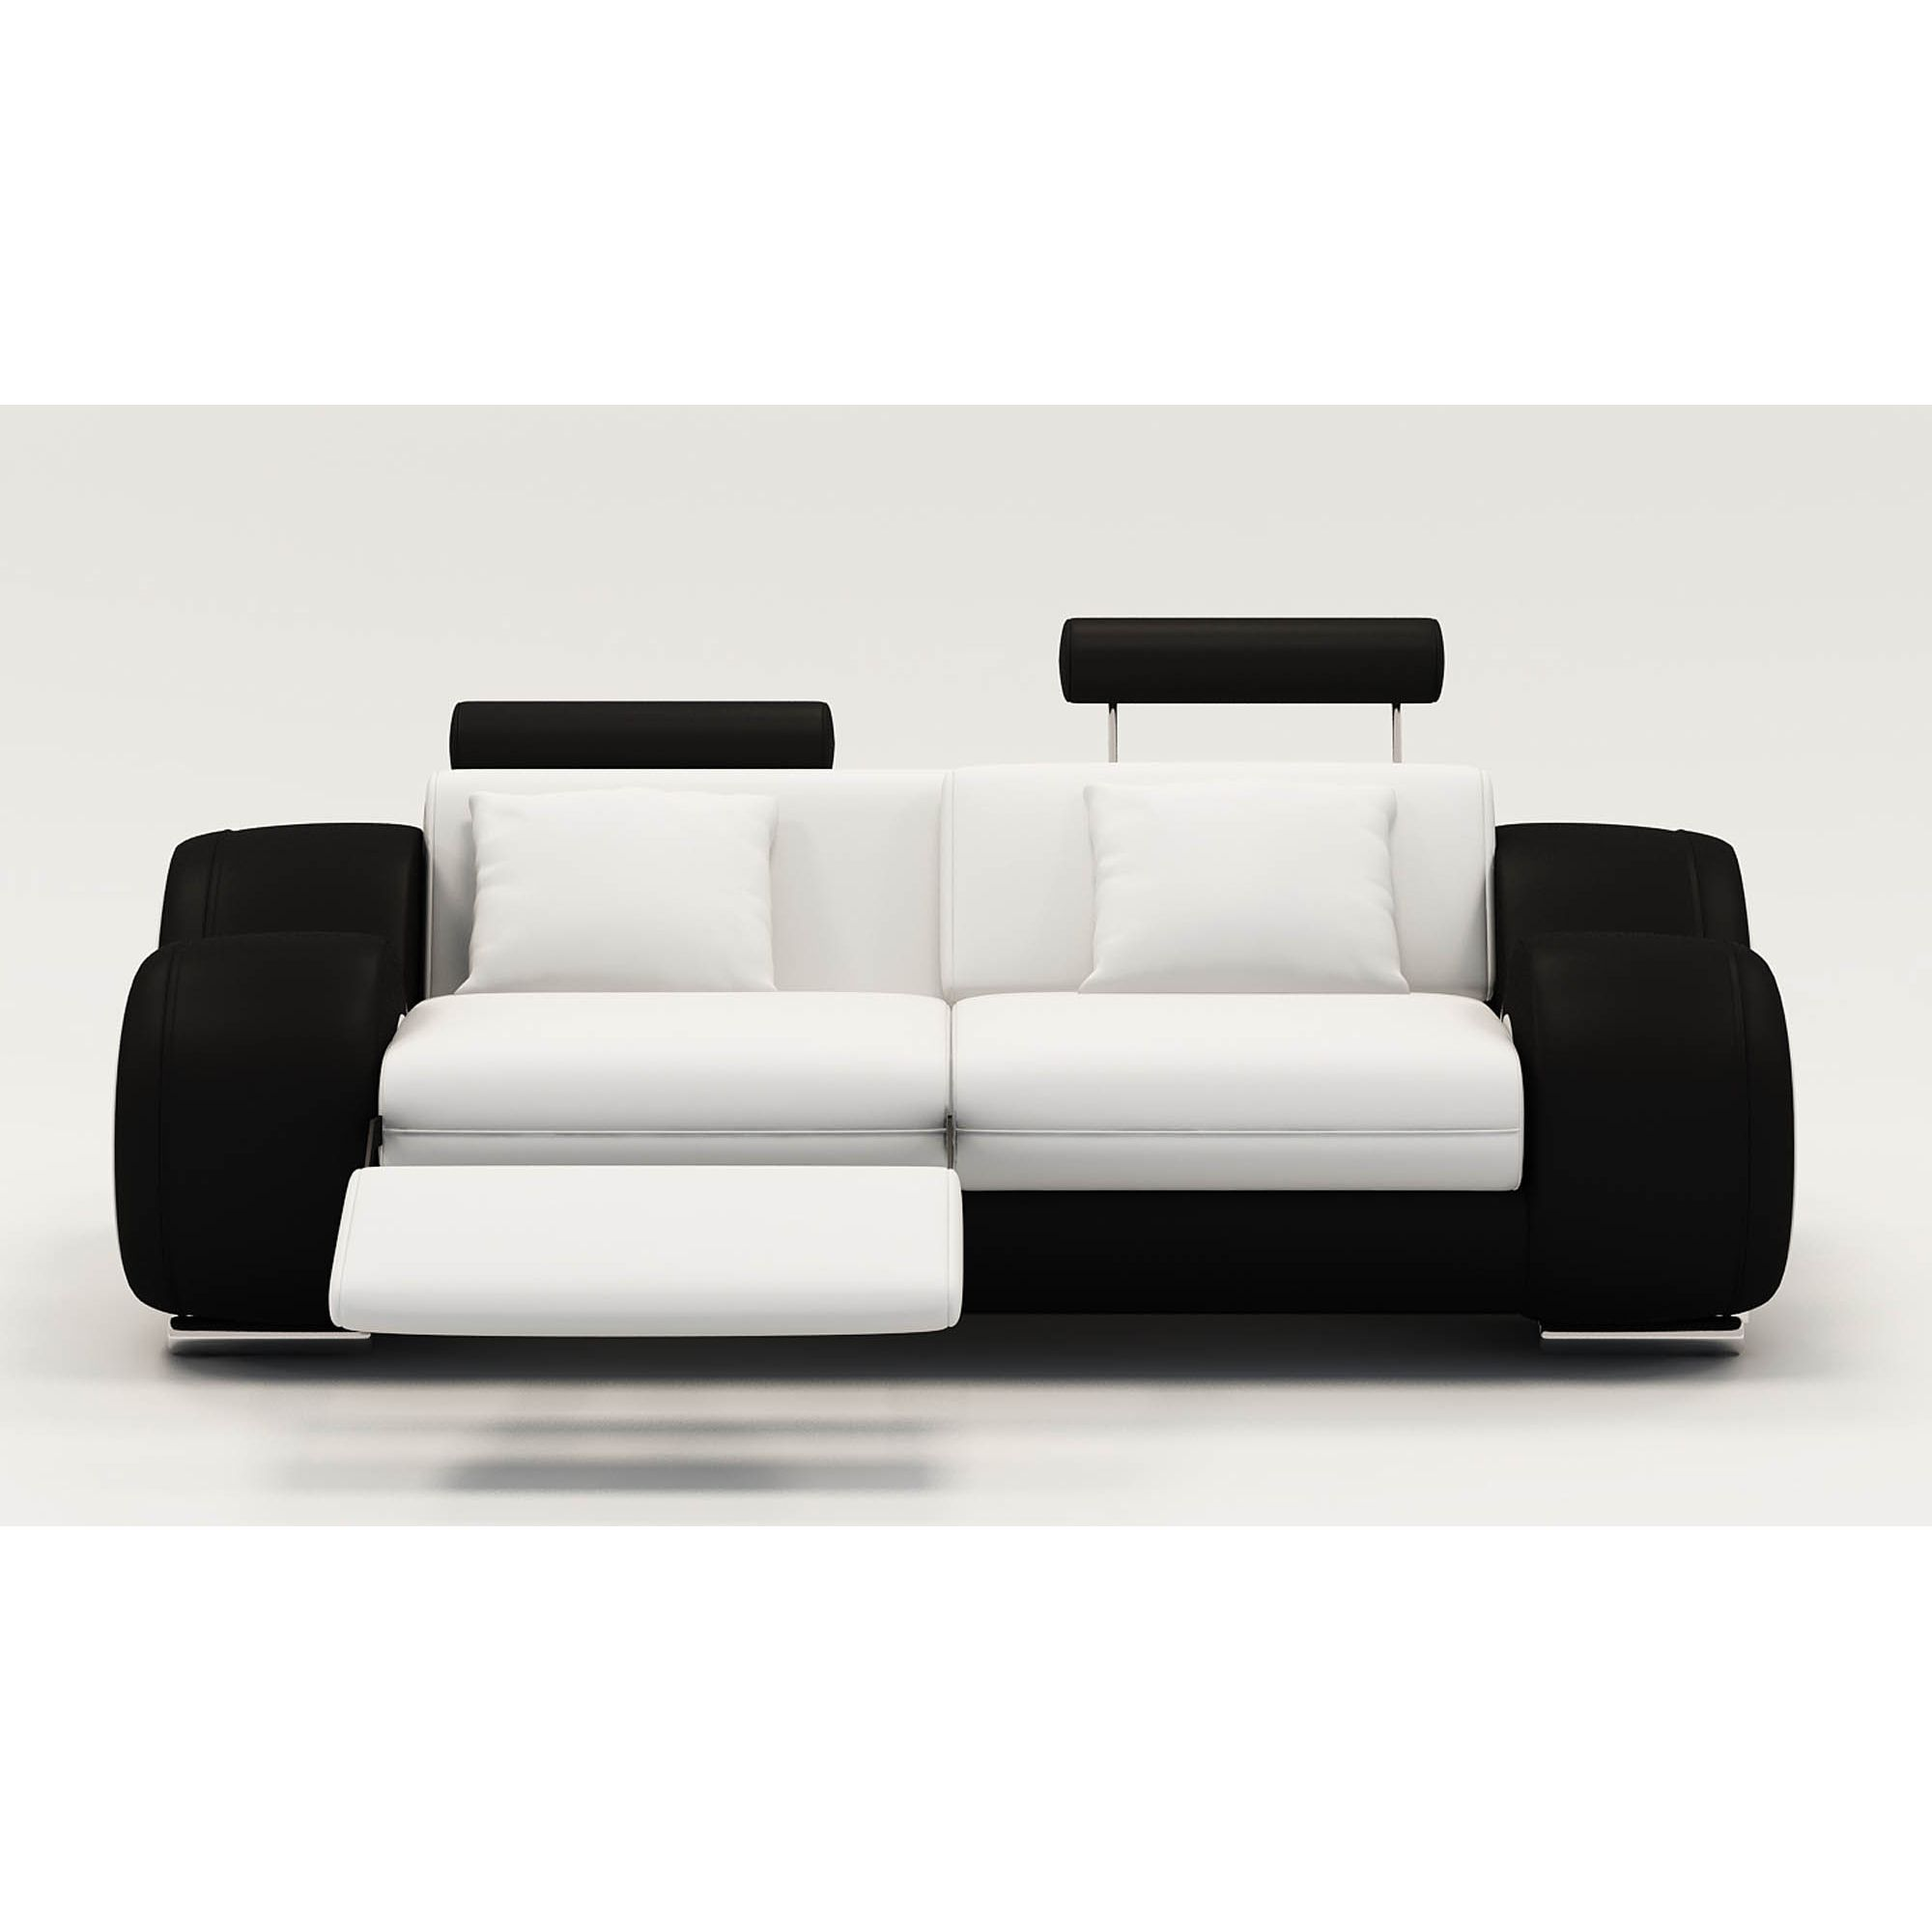 Deco in paris canape 2 places design relax oslo en cuir for Canape cuir blanc design